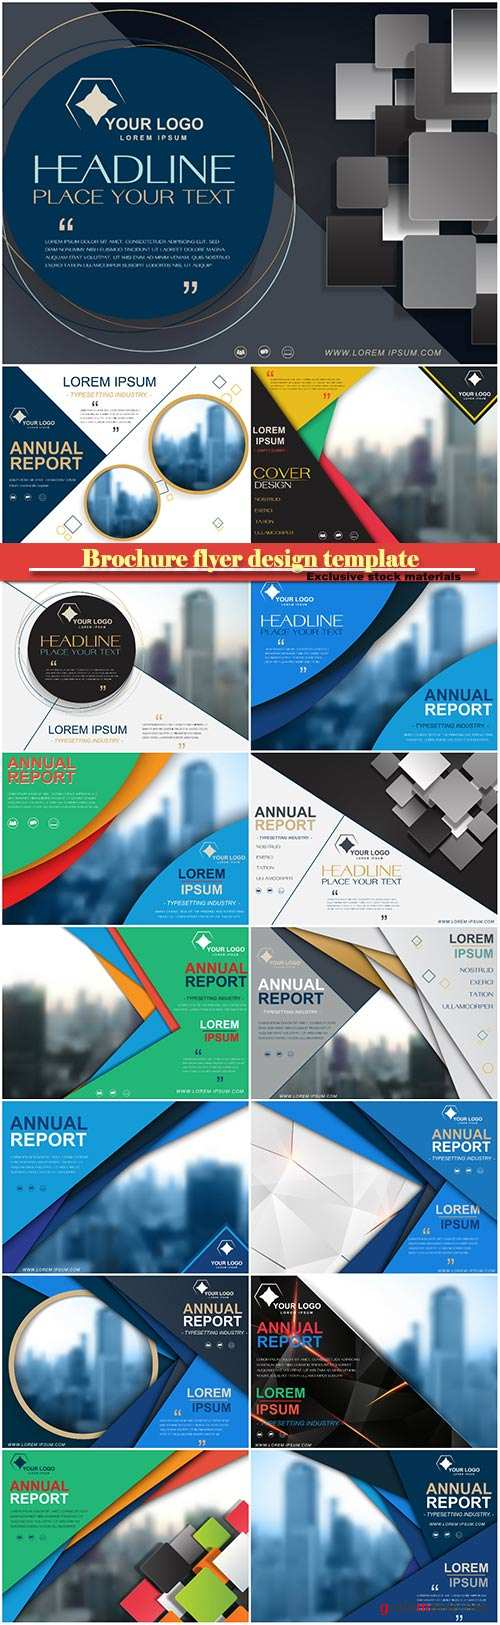 Brochure flyer design template vector, cover presentation